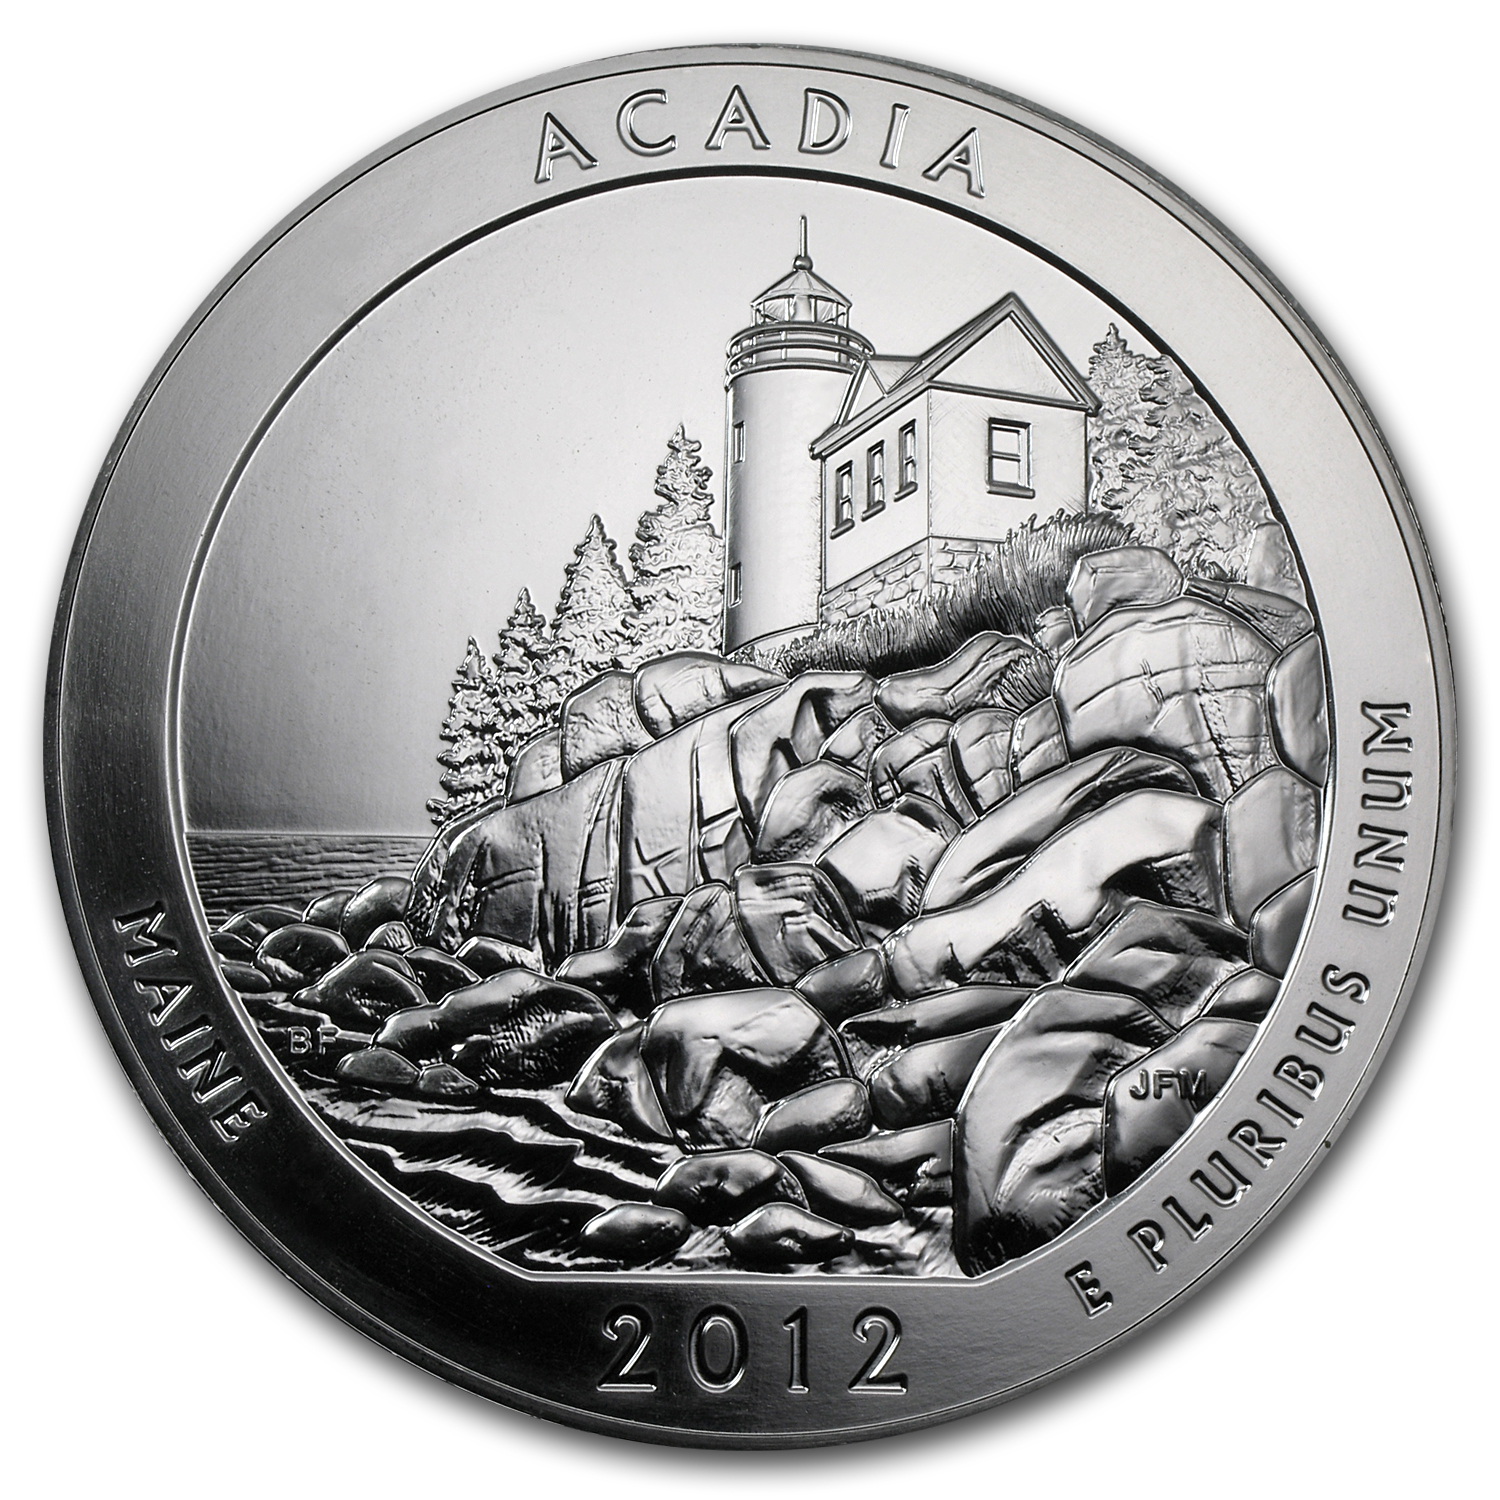 2012 5 oz Silver ATB Acadia National Park, Maine